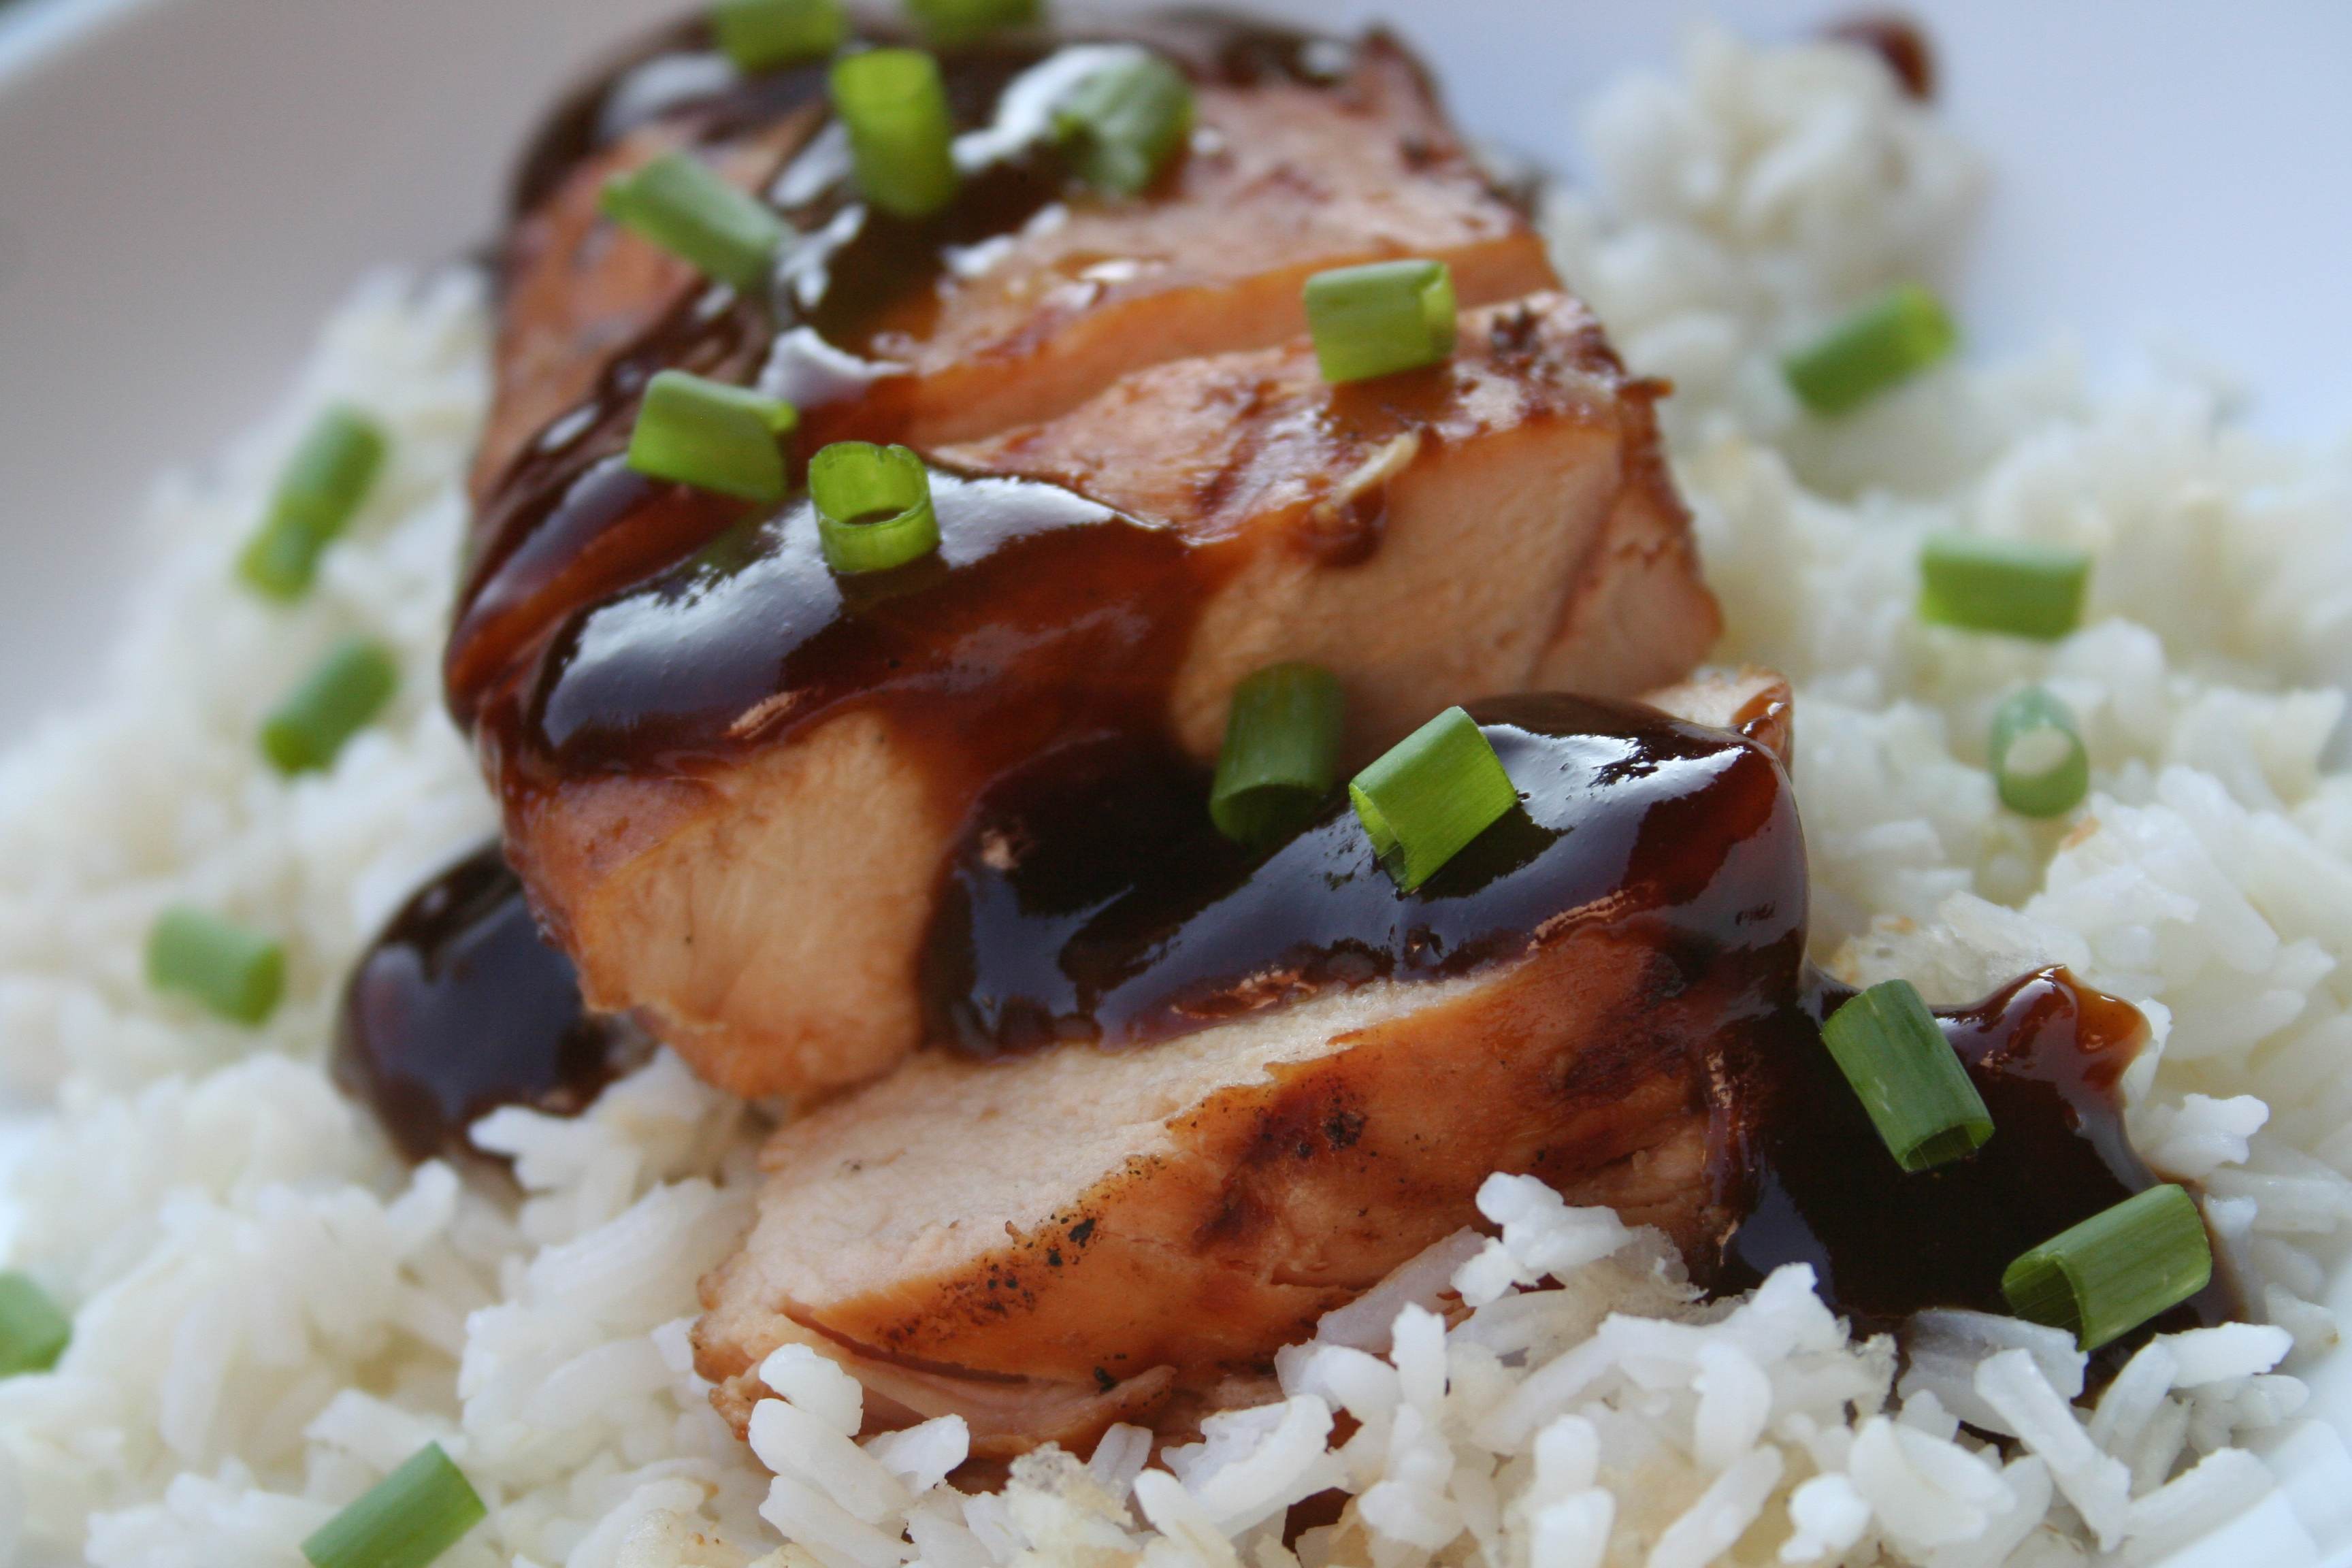 Grilled Teriyaki Chicken from Scratch